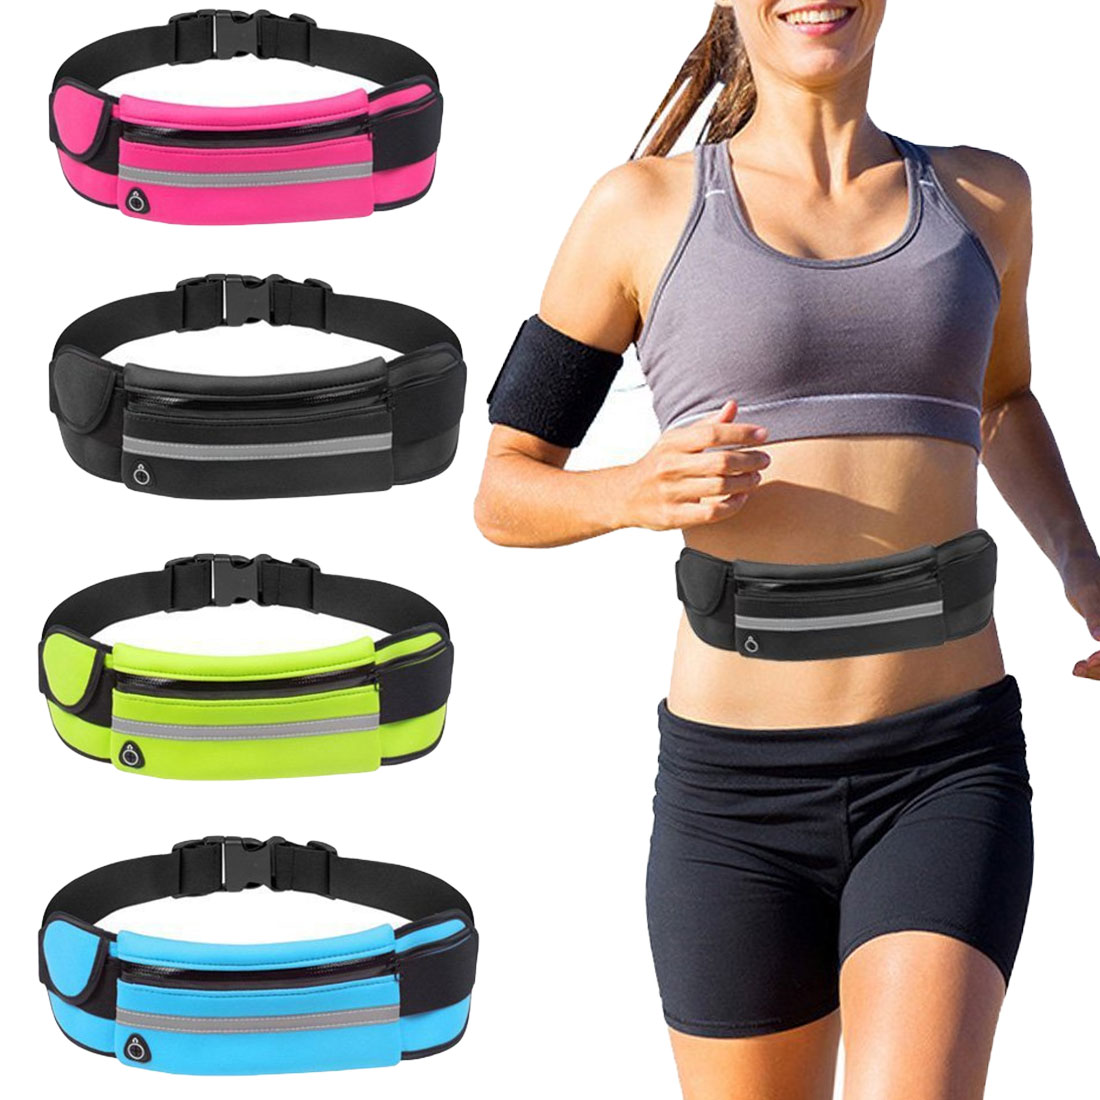 New Running Waist Bag Waterproof Phone Container Jogging Hiking Belt Belly Bag Women Gym Fitness Bag Lady Sport Accessories 7